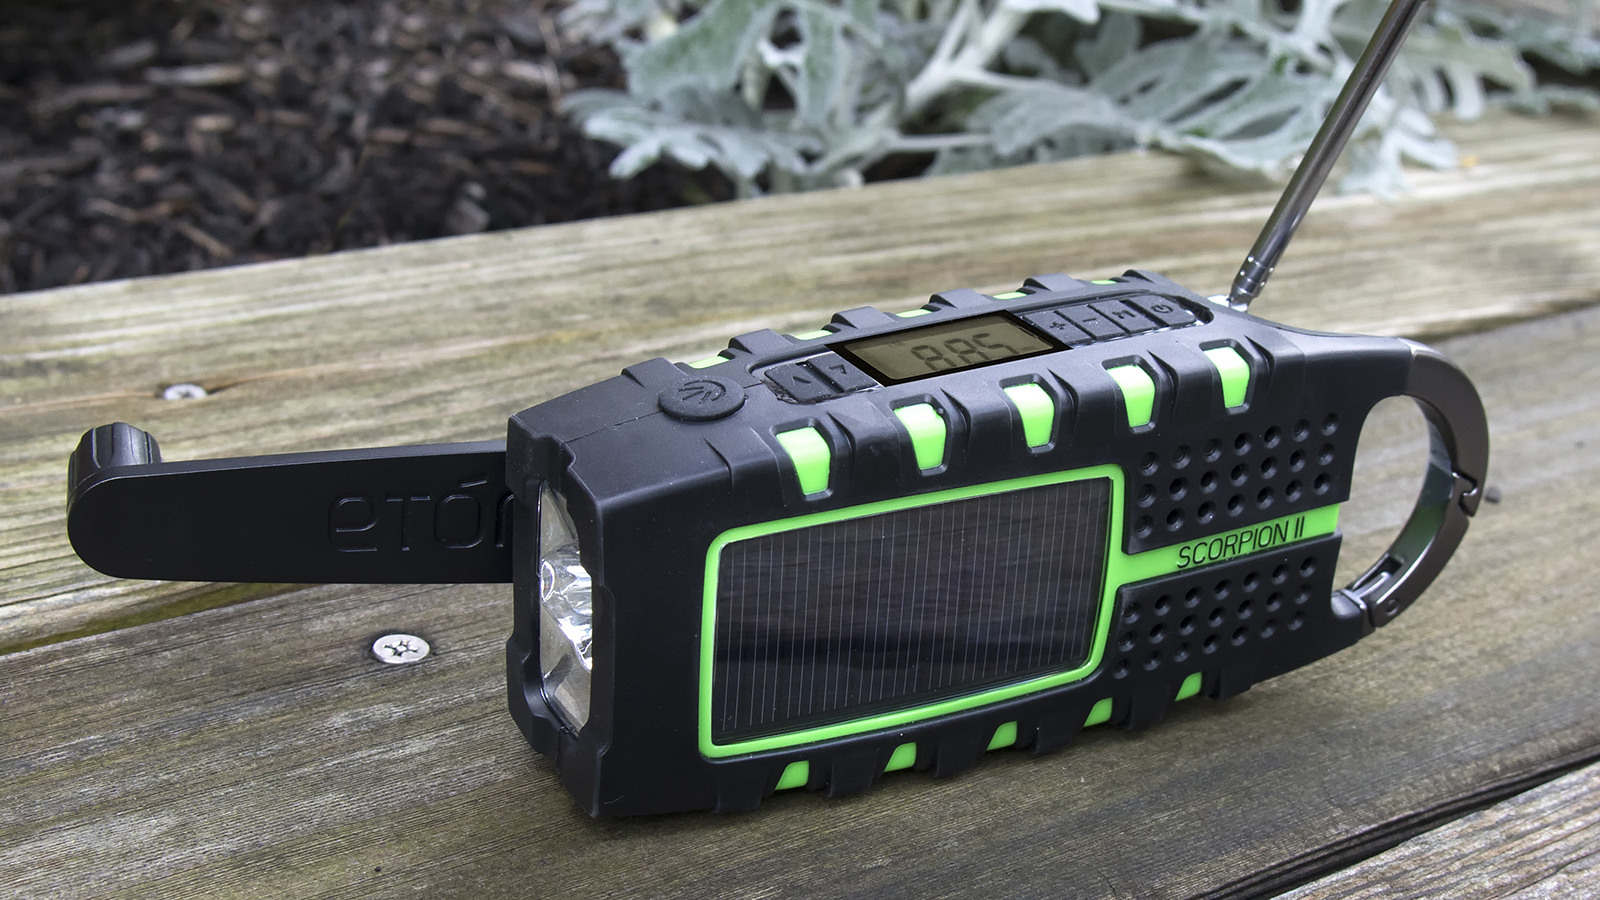 ETON Scorpion II Radio